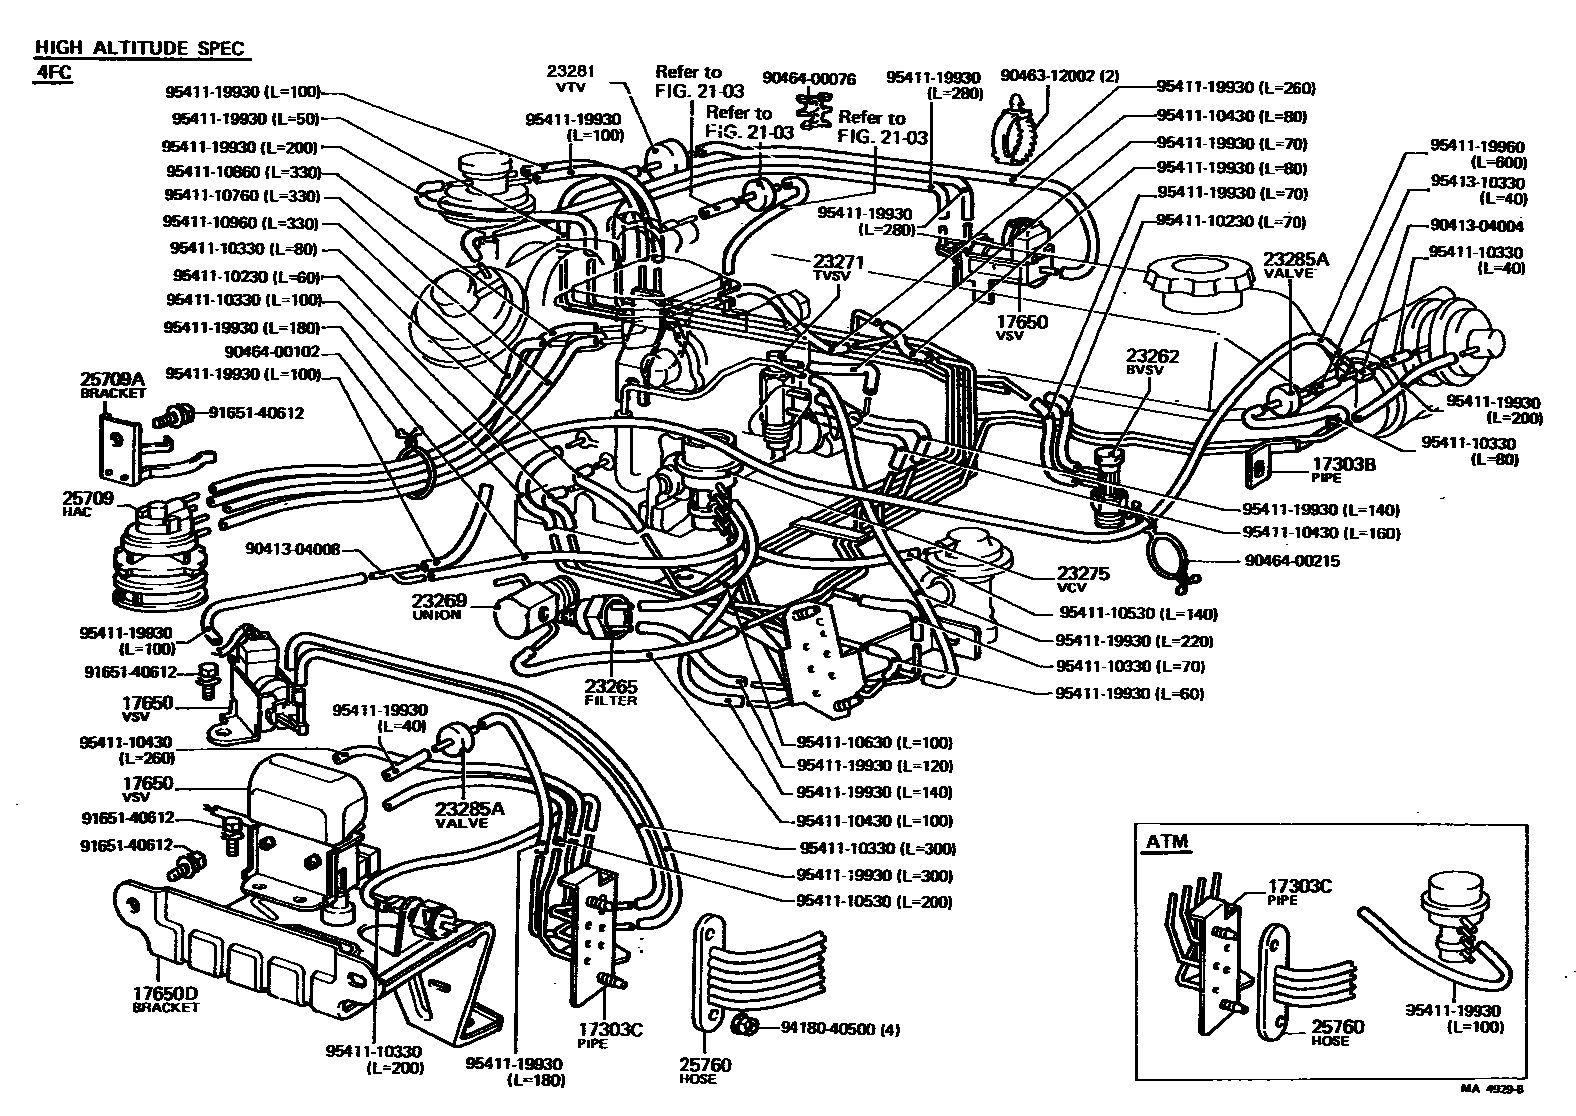 22 Clever Car Wiring Diagrams Explained Design S